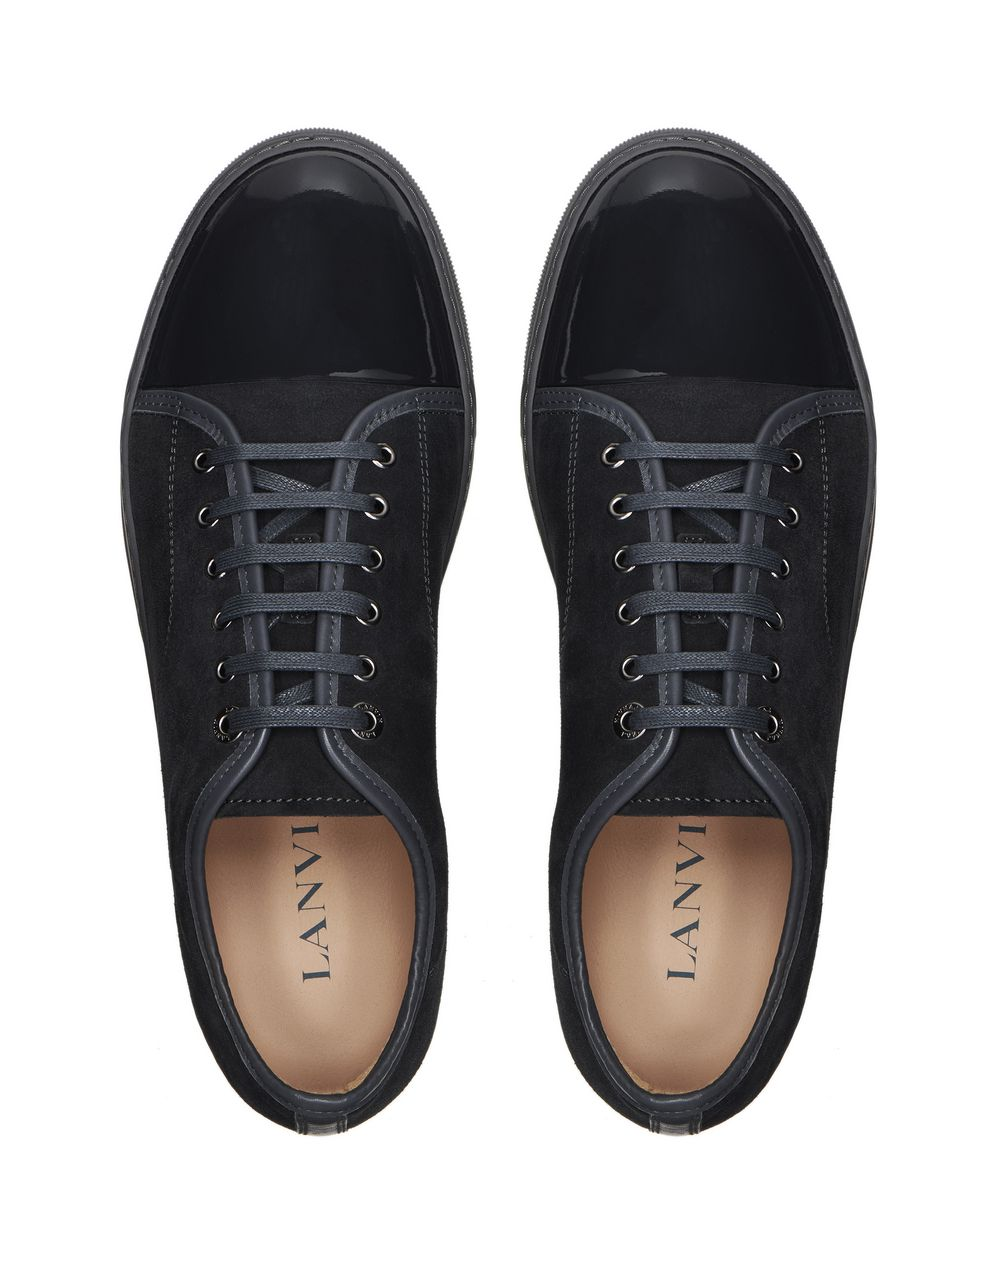 DBB1 SUEDE AND PATENT LEATHER SNEAKERS - Lanvin